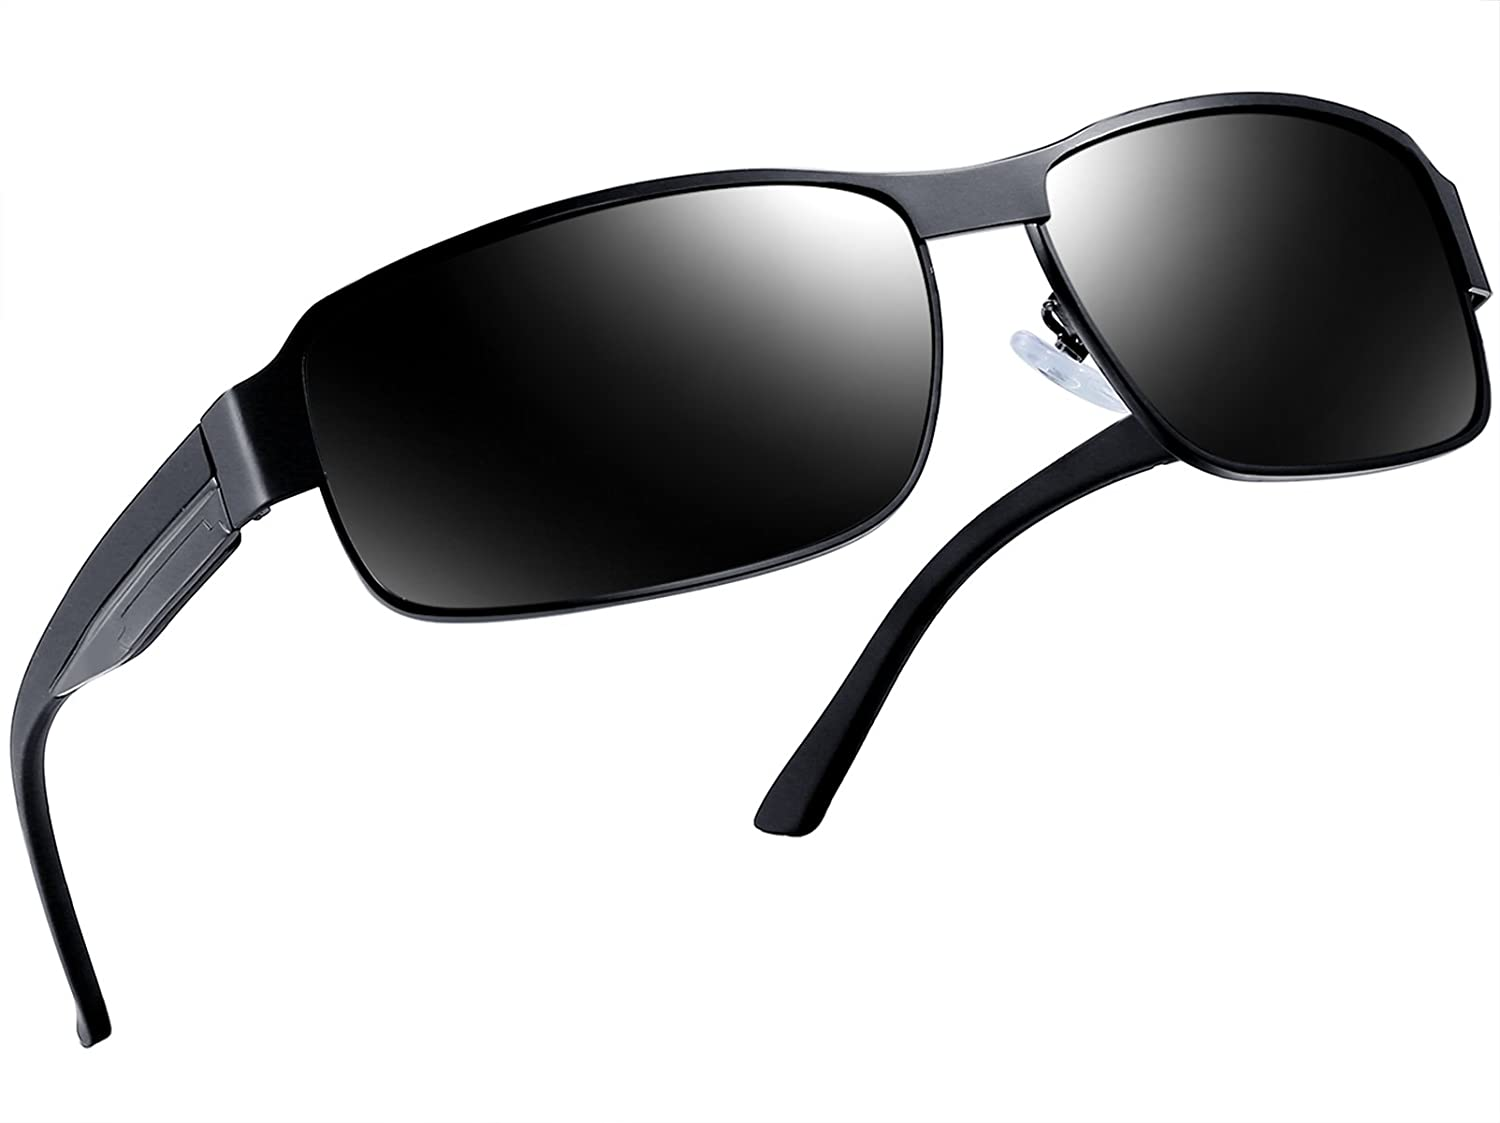 84ece48cbd12 Amazon.com  Joopin-Polarized Sunglasses Men Polaroid Driving Sun Glasses  Mens Sunglass (Black